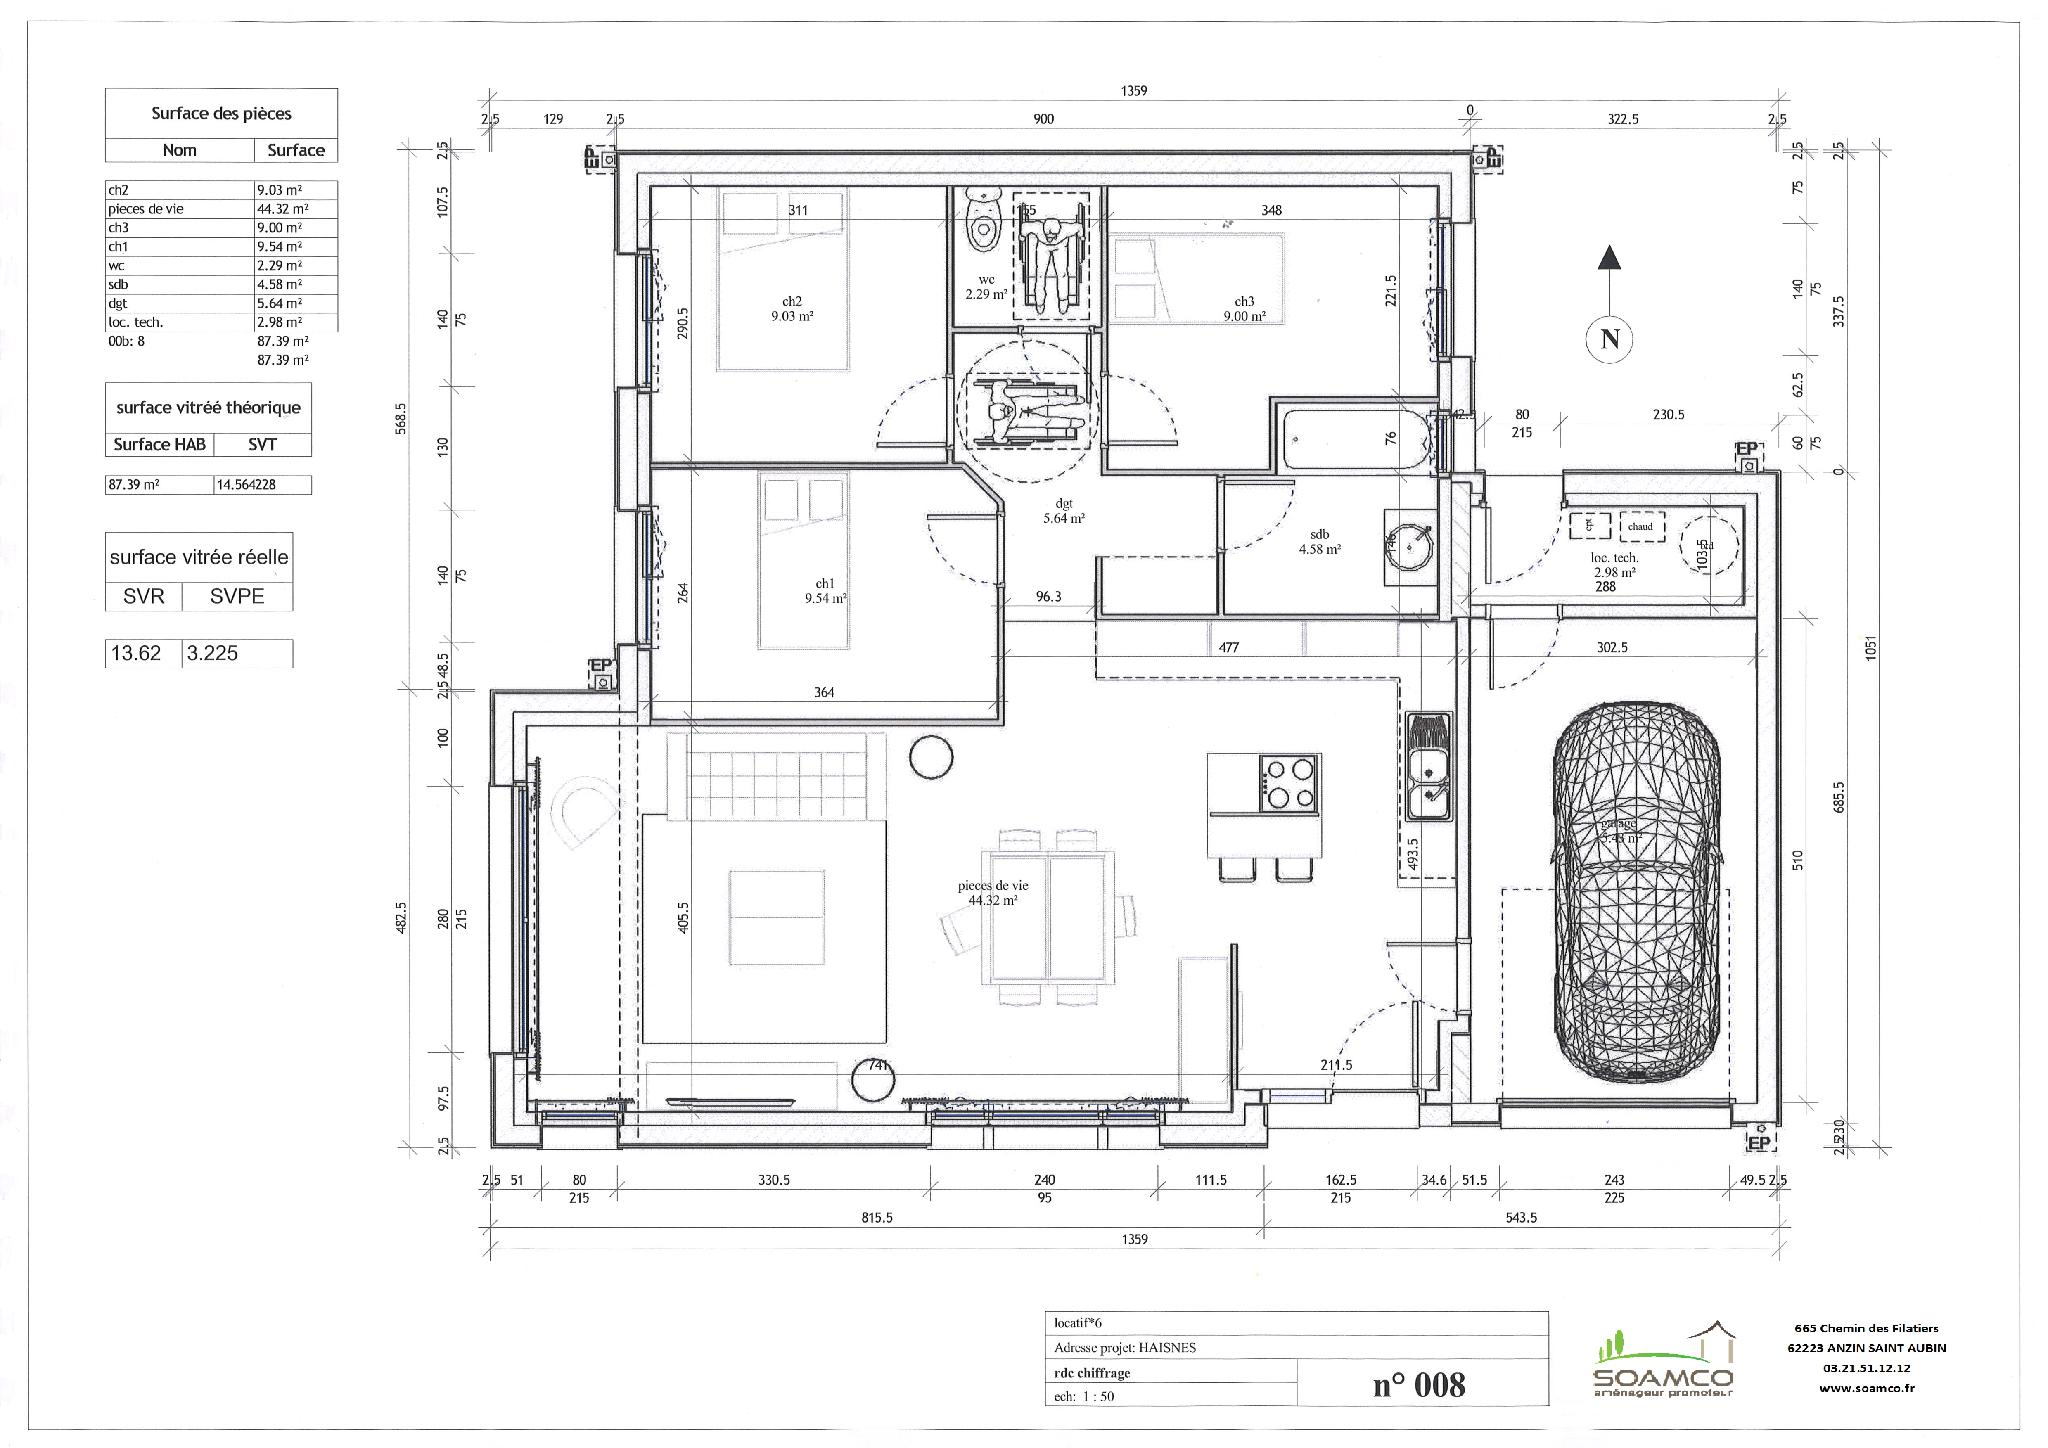 Plan maison t4 gallery of t brhat with plan maison t4 for Plan maison t4